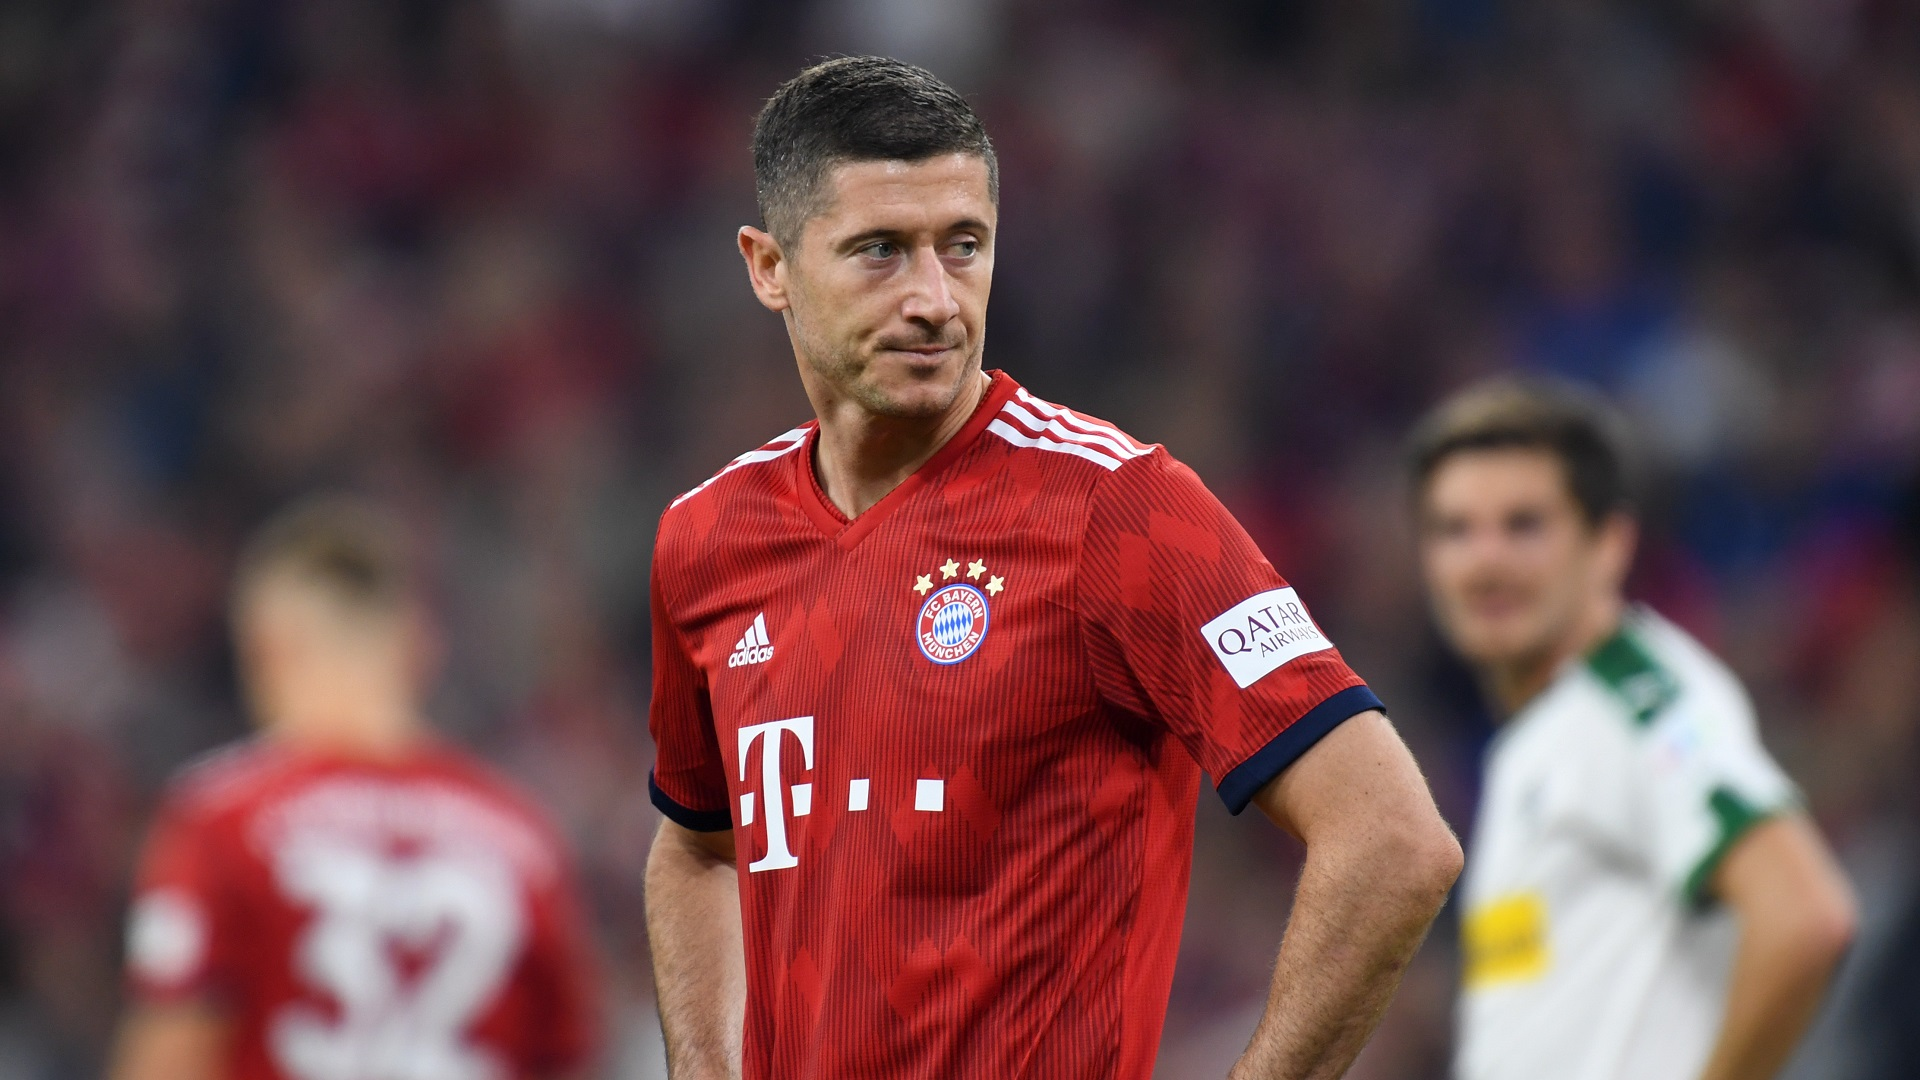 Bayern Munich call media briefing amid Niko Kovac pressure